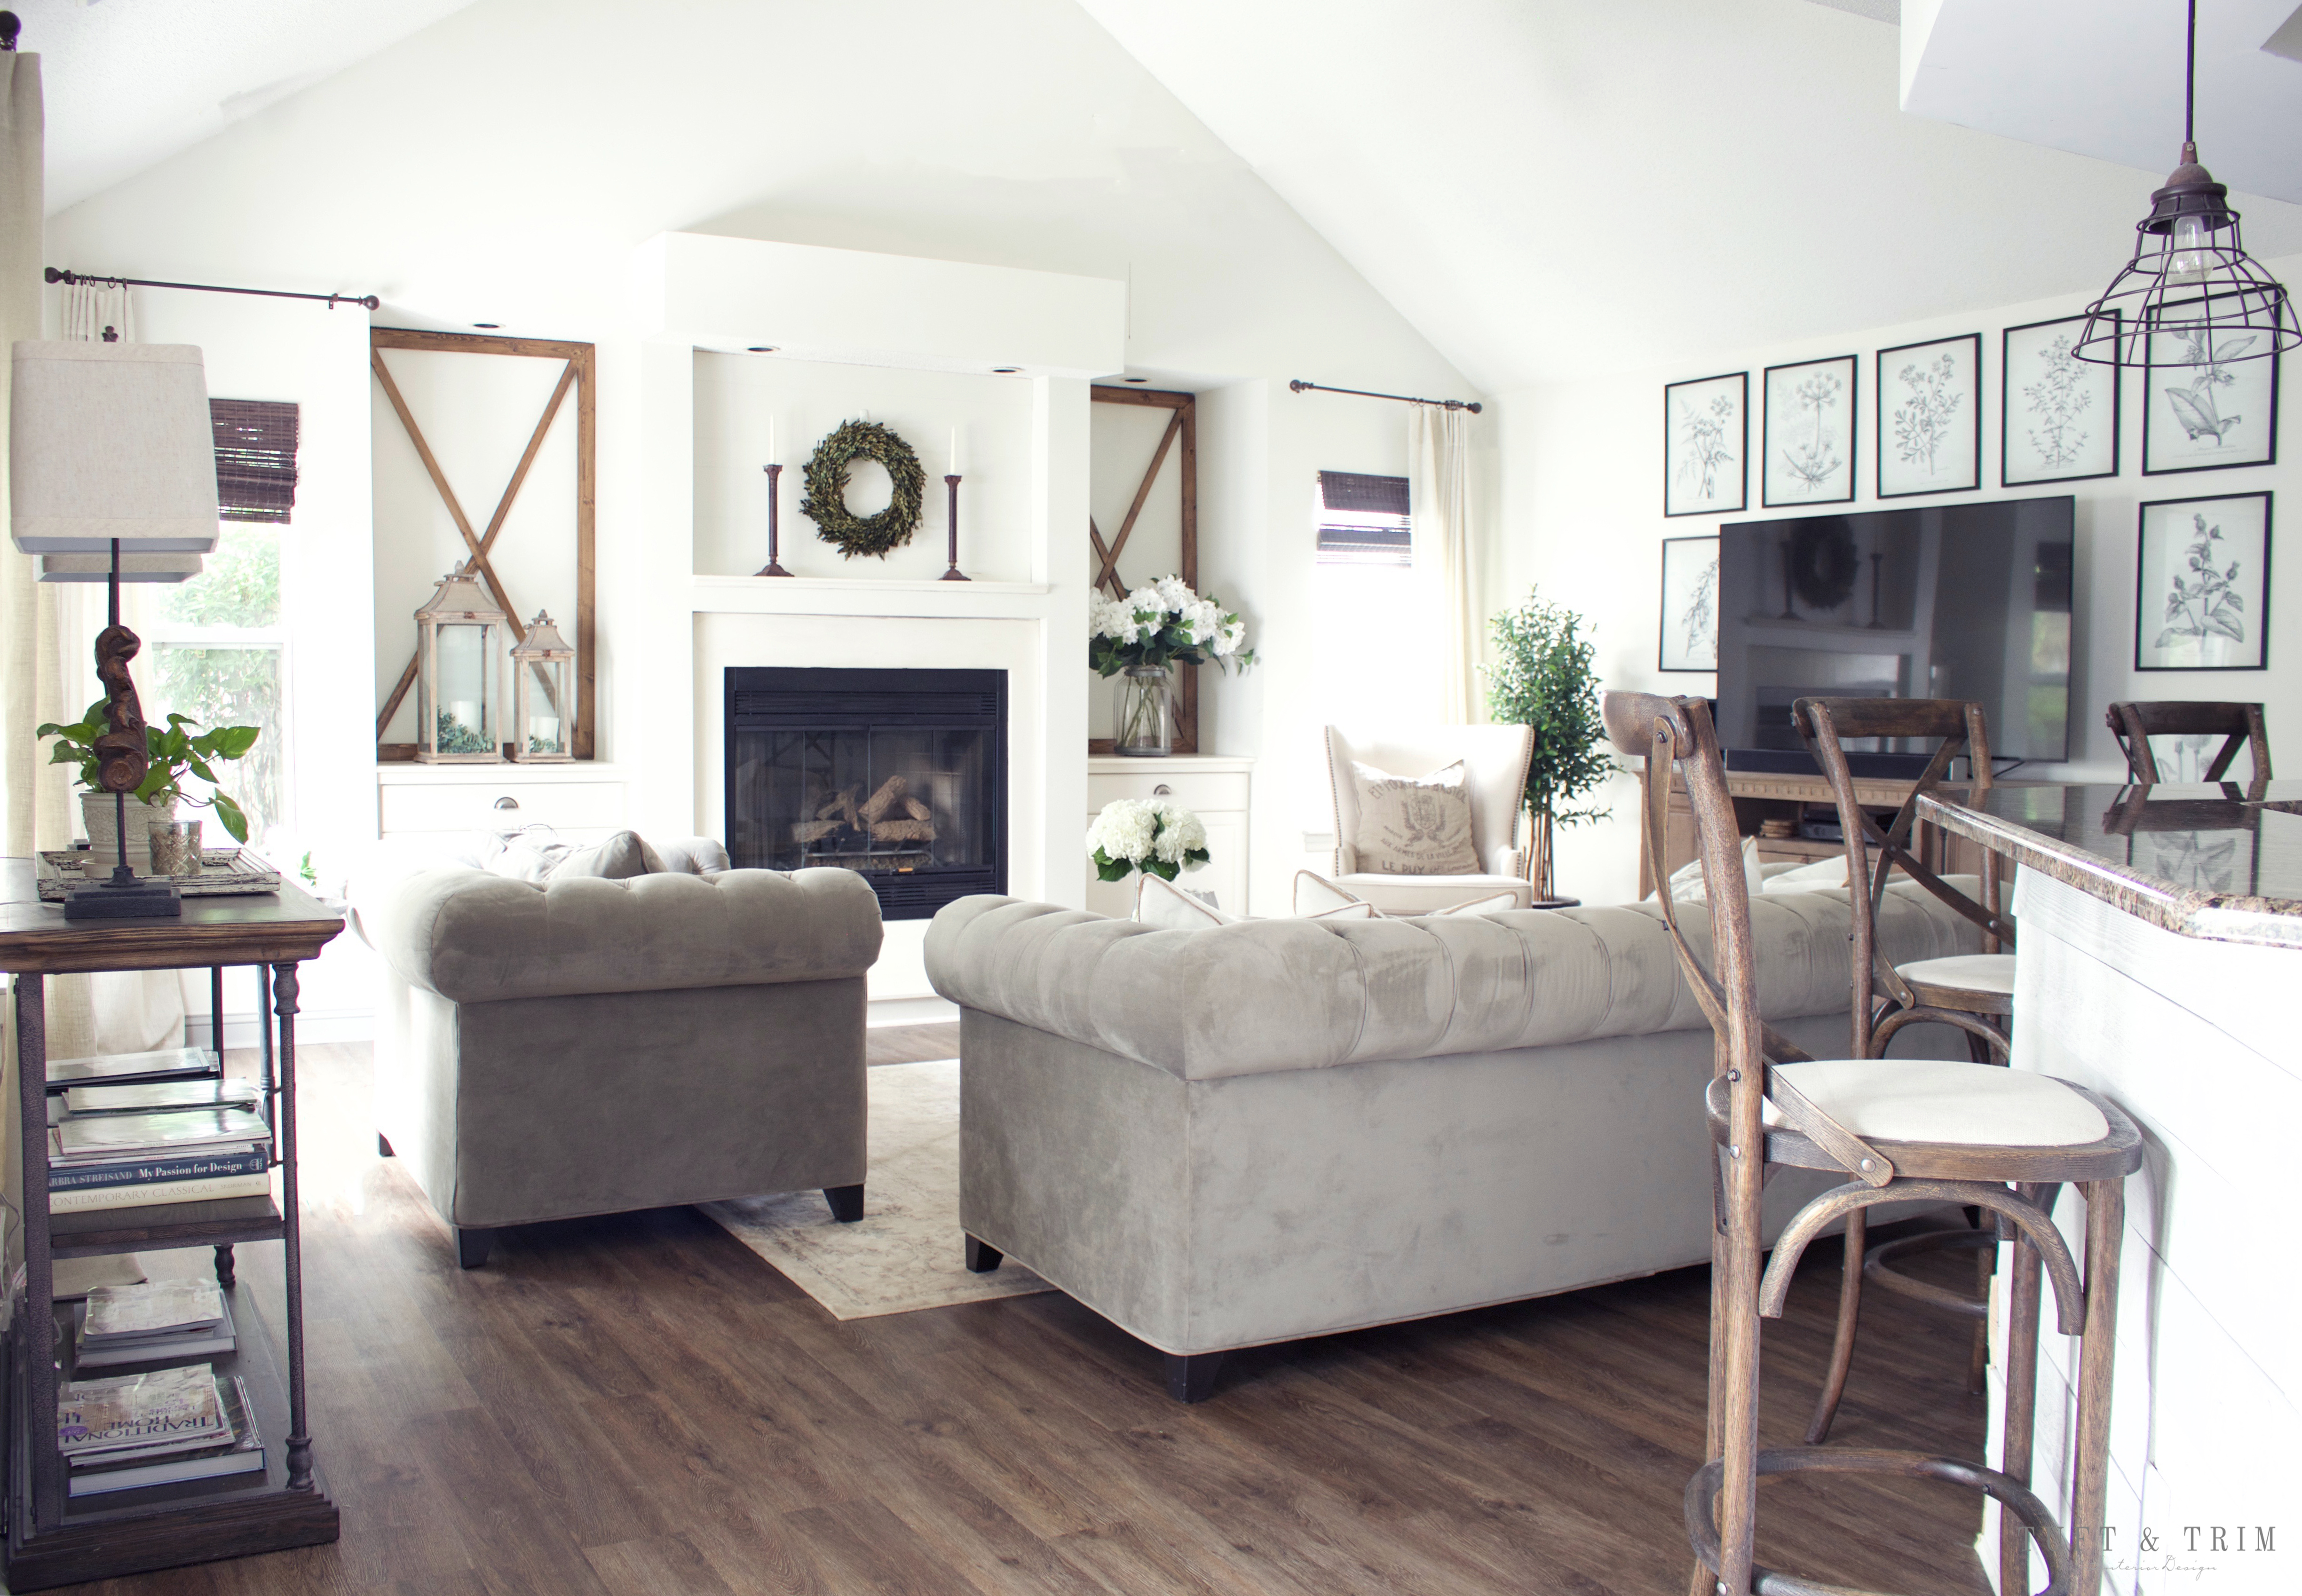 6 ways we transformed our home on a budget